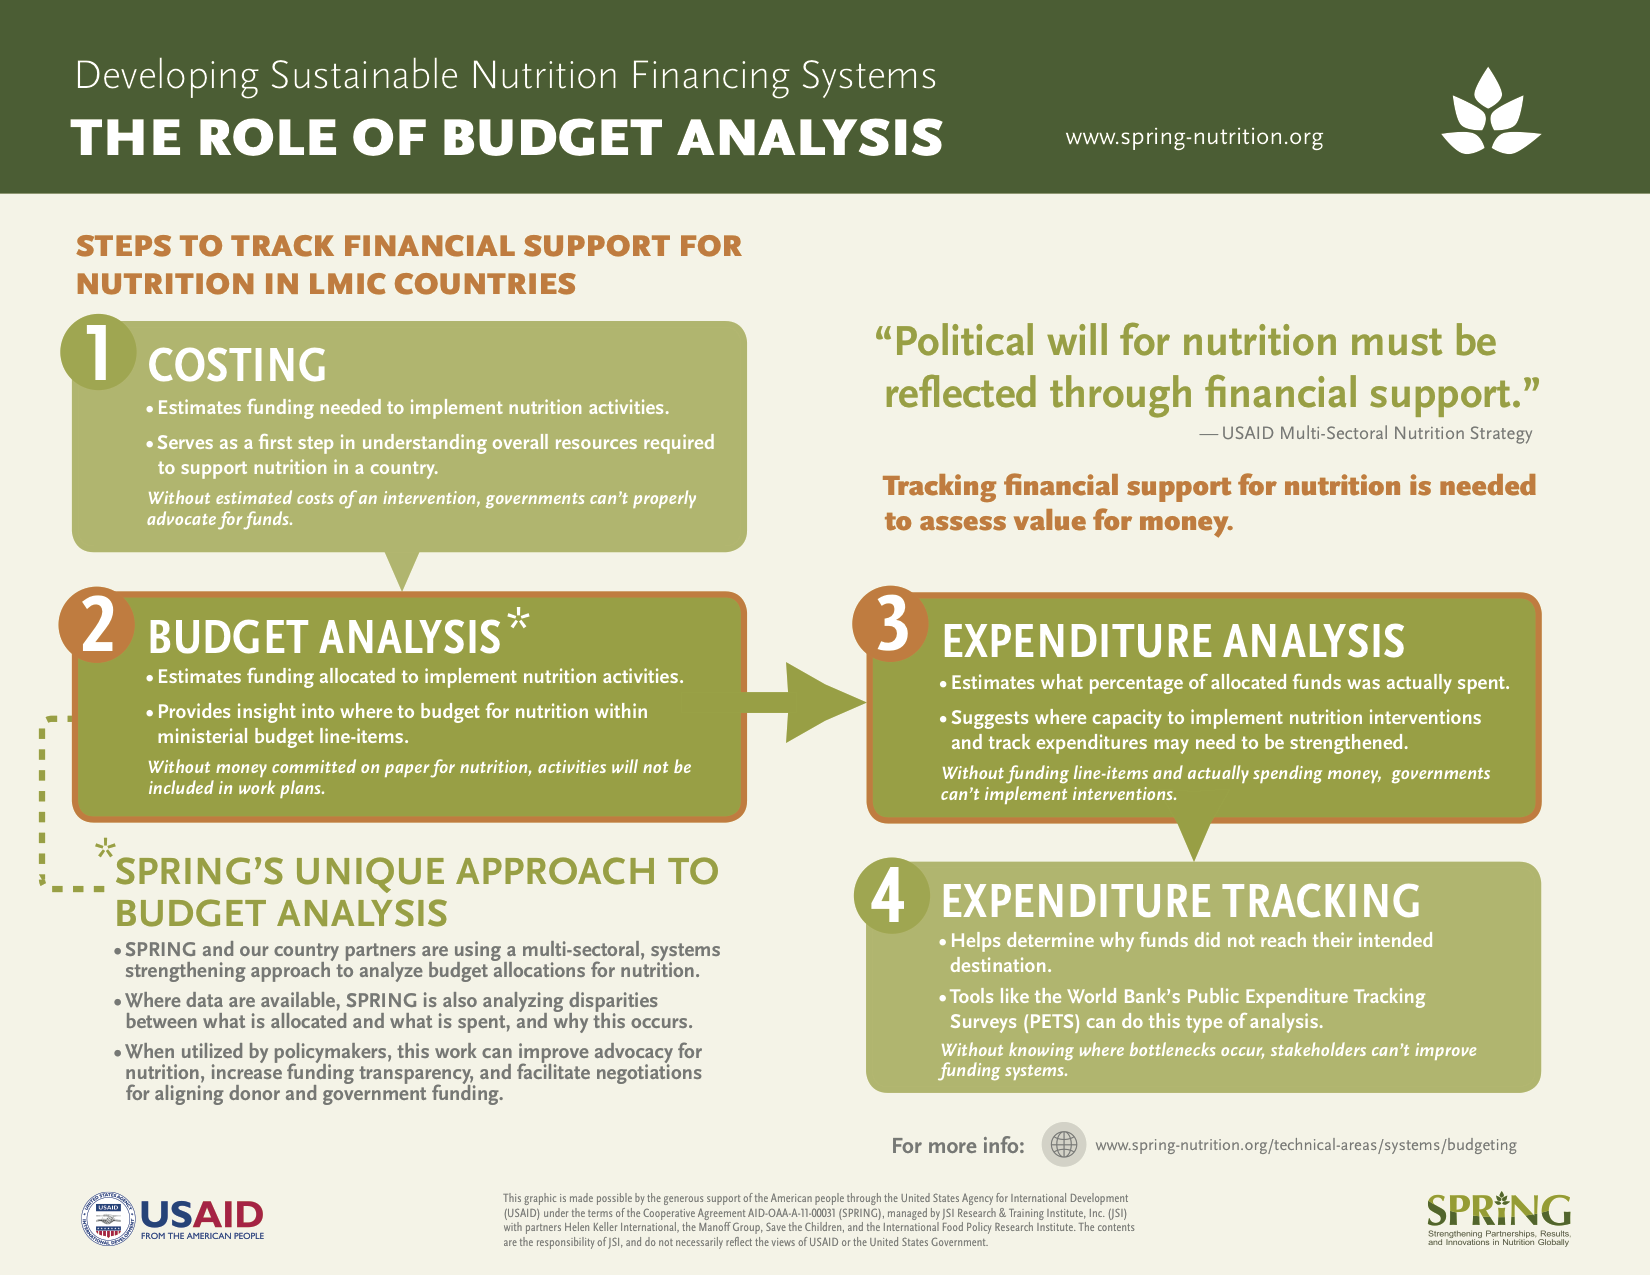 Developing Sustainable Nutrition Financing Systems: The Role of Budget Analysis